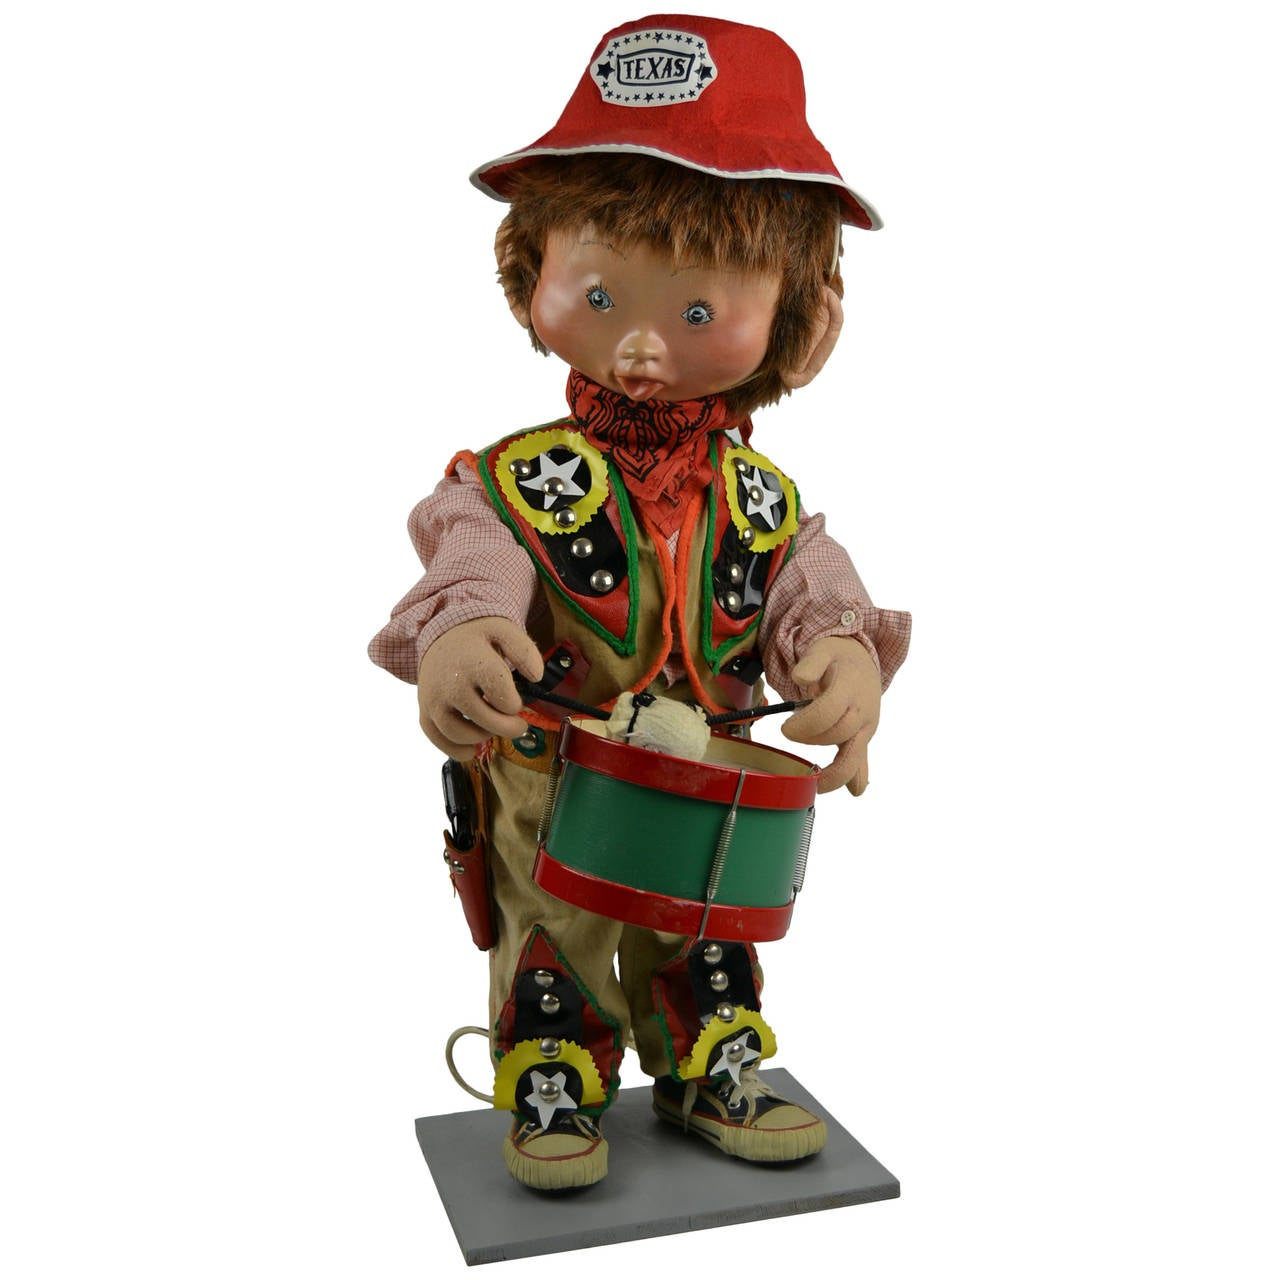 1960s Mechanical Cowboy Doll Playing the Drum